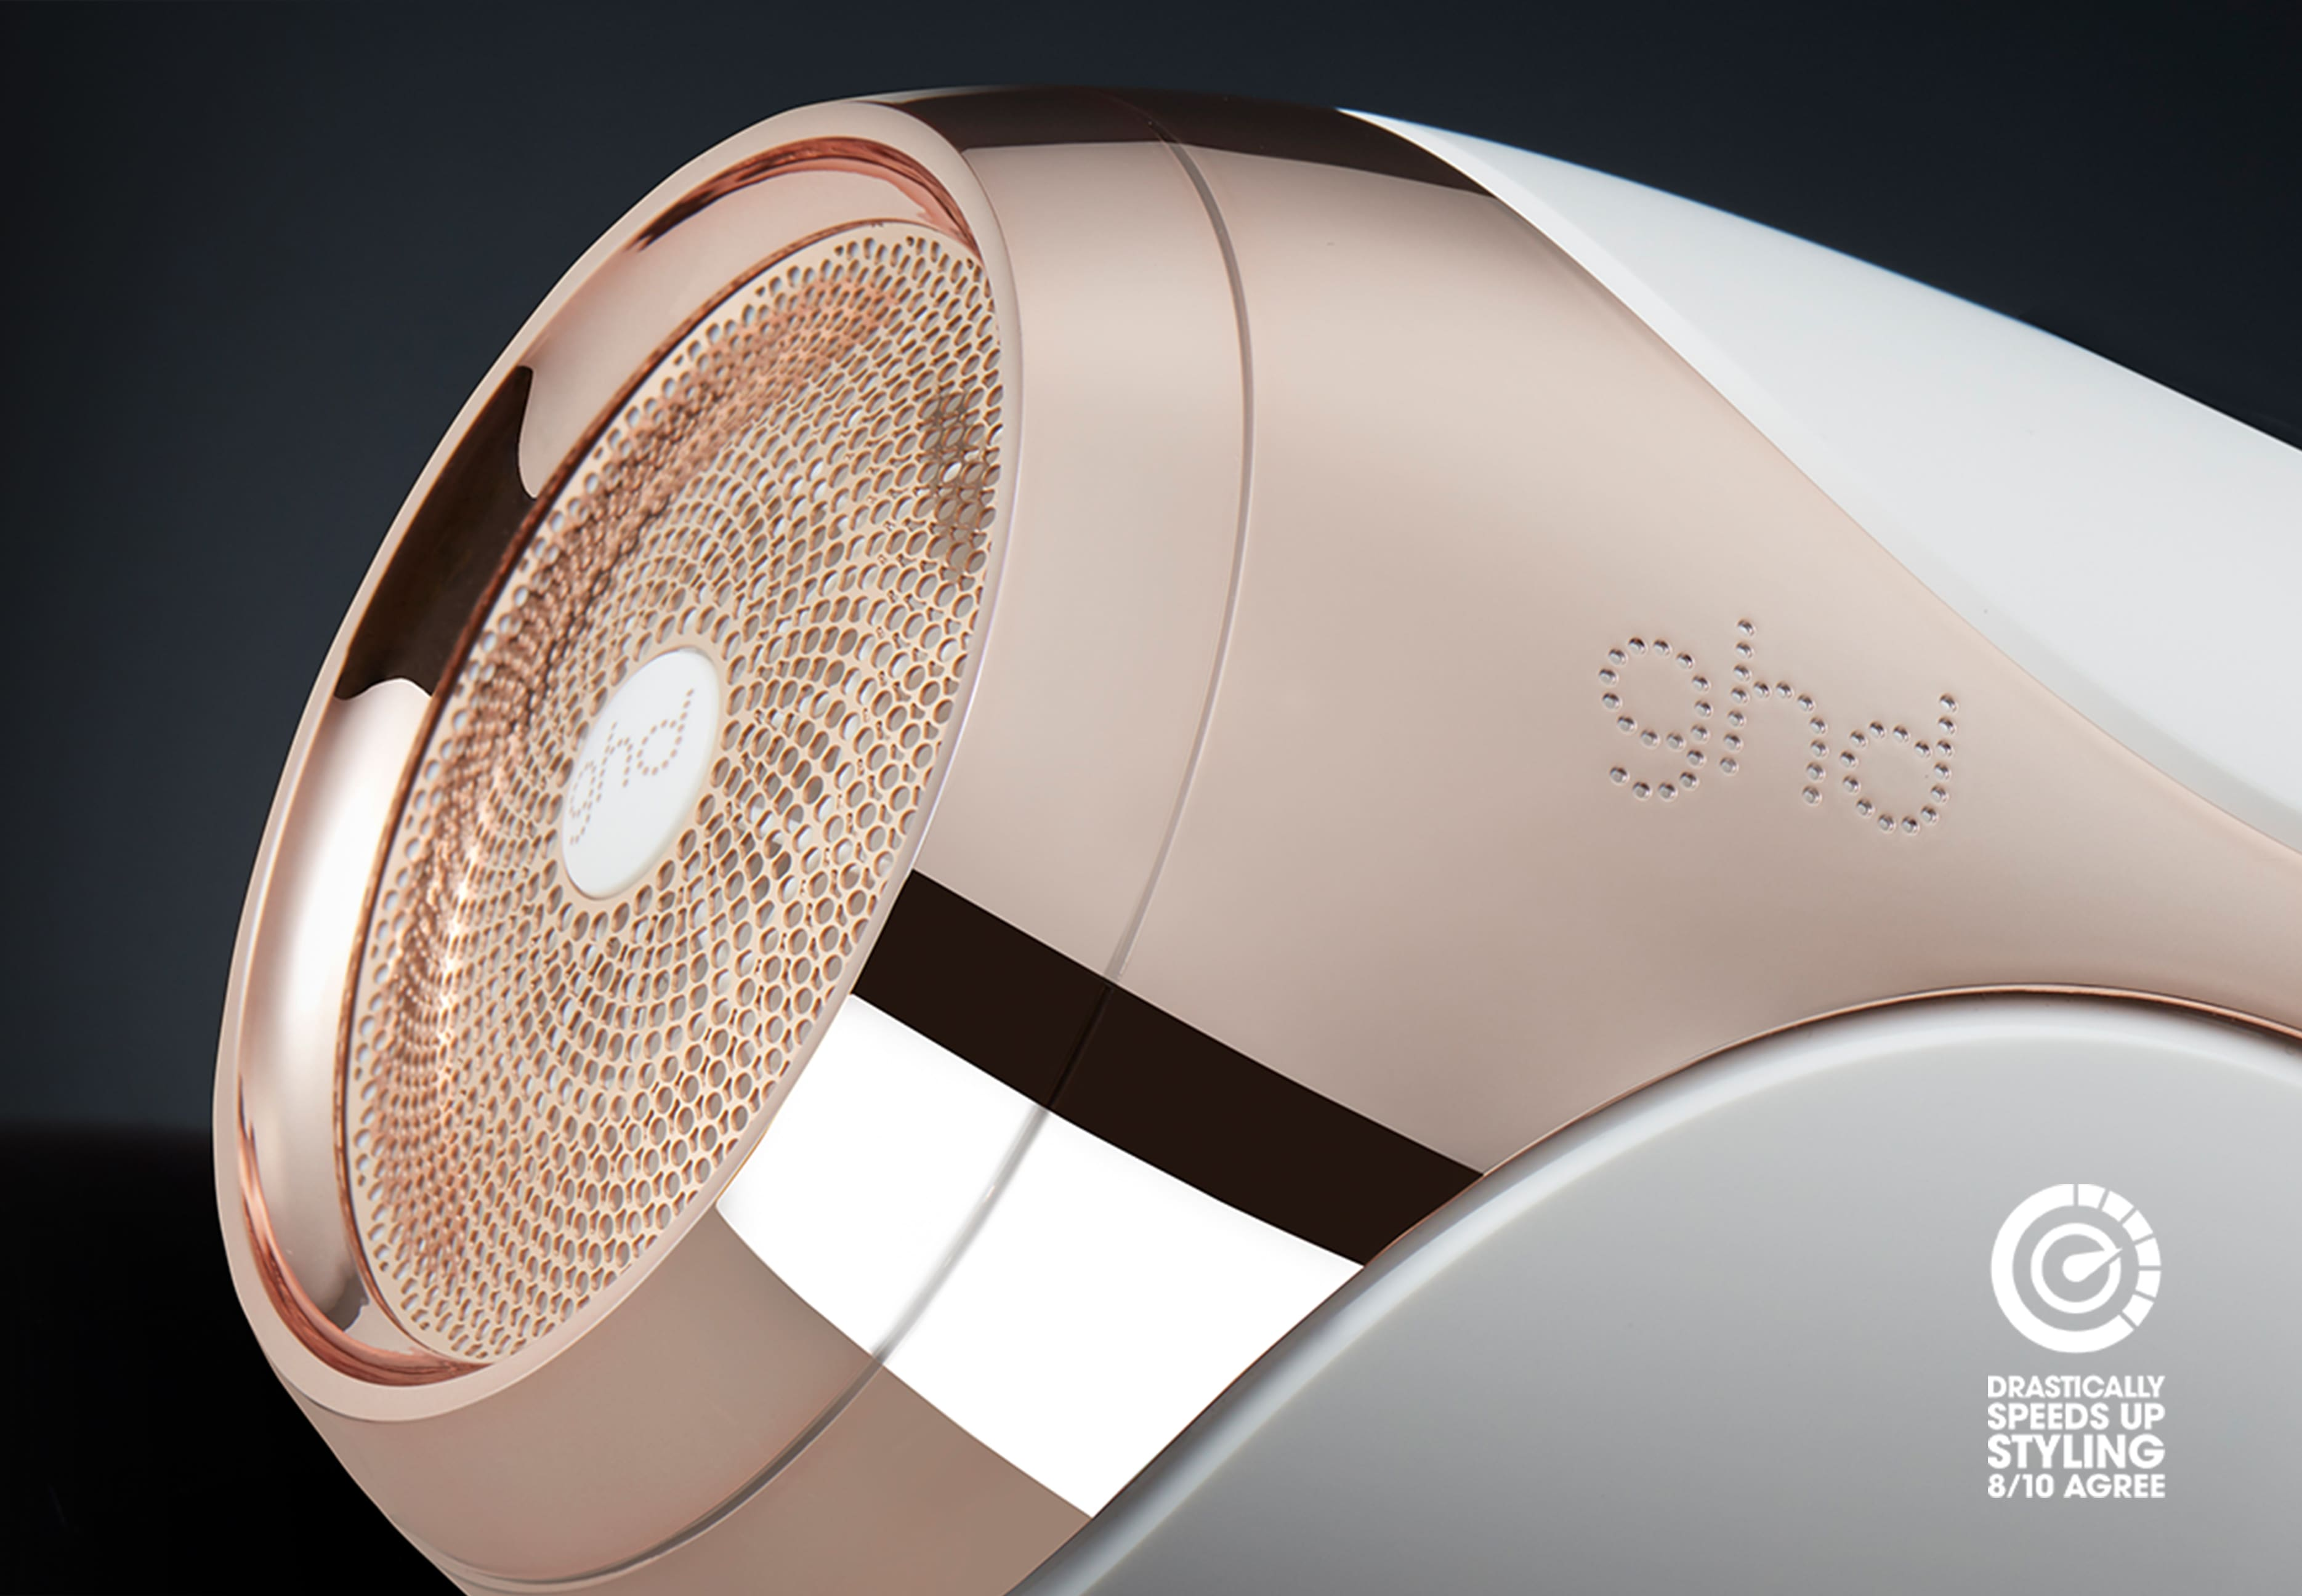 ghd helios hair dryer in white filter close-up